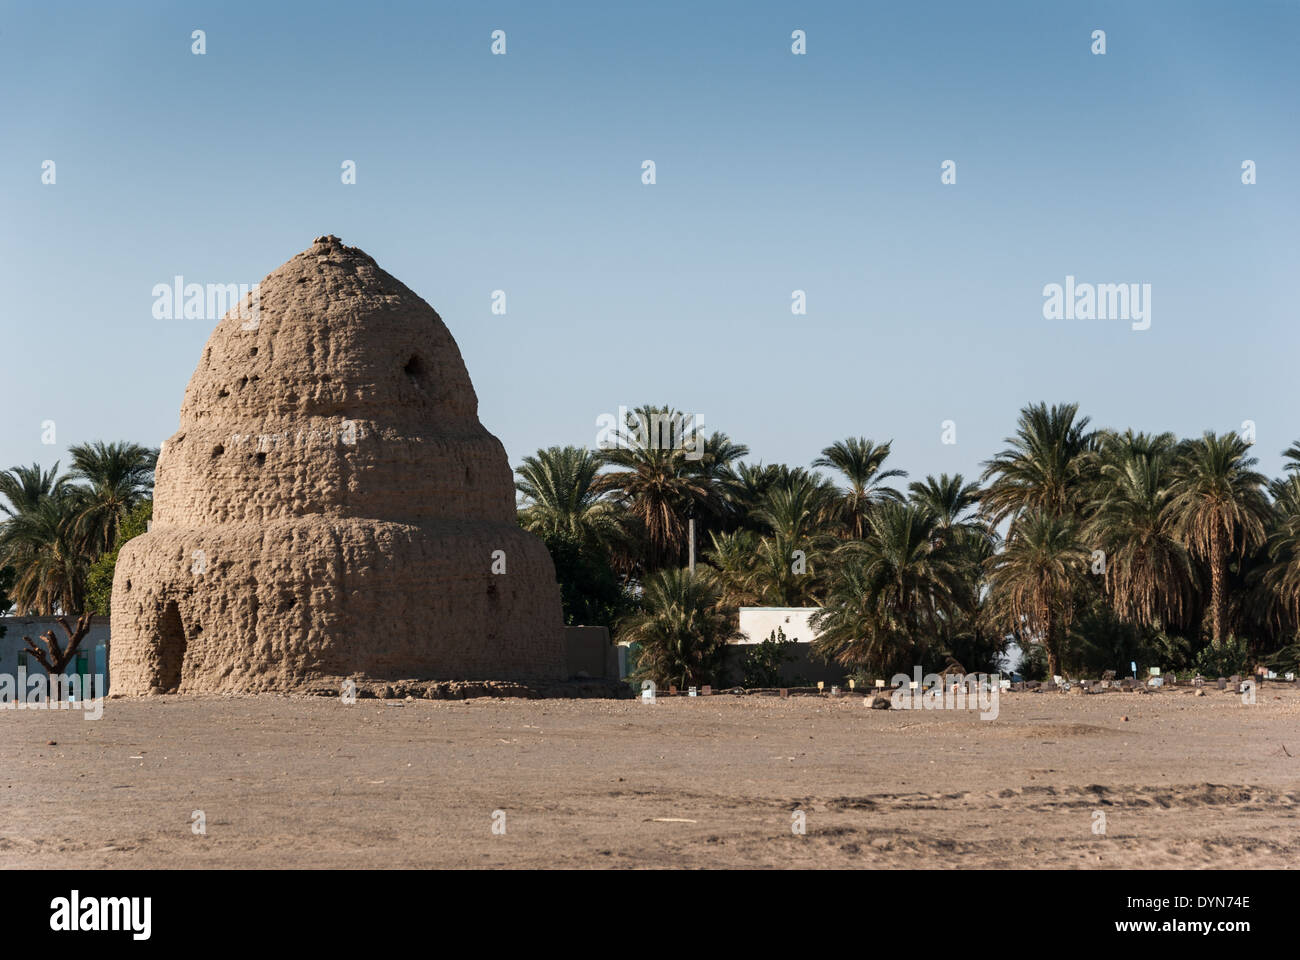 Quba and the Muslim cemetery, Kerma, northern Sudan - Stock Image